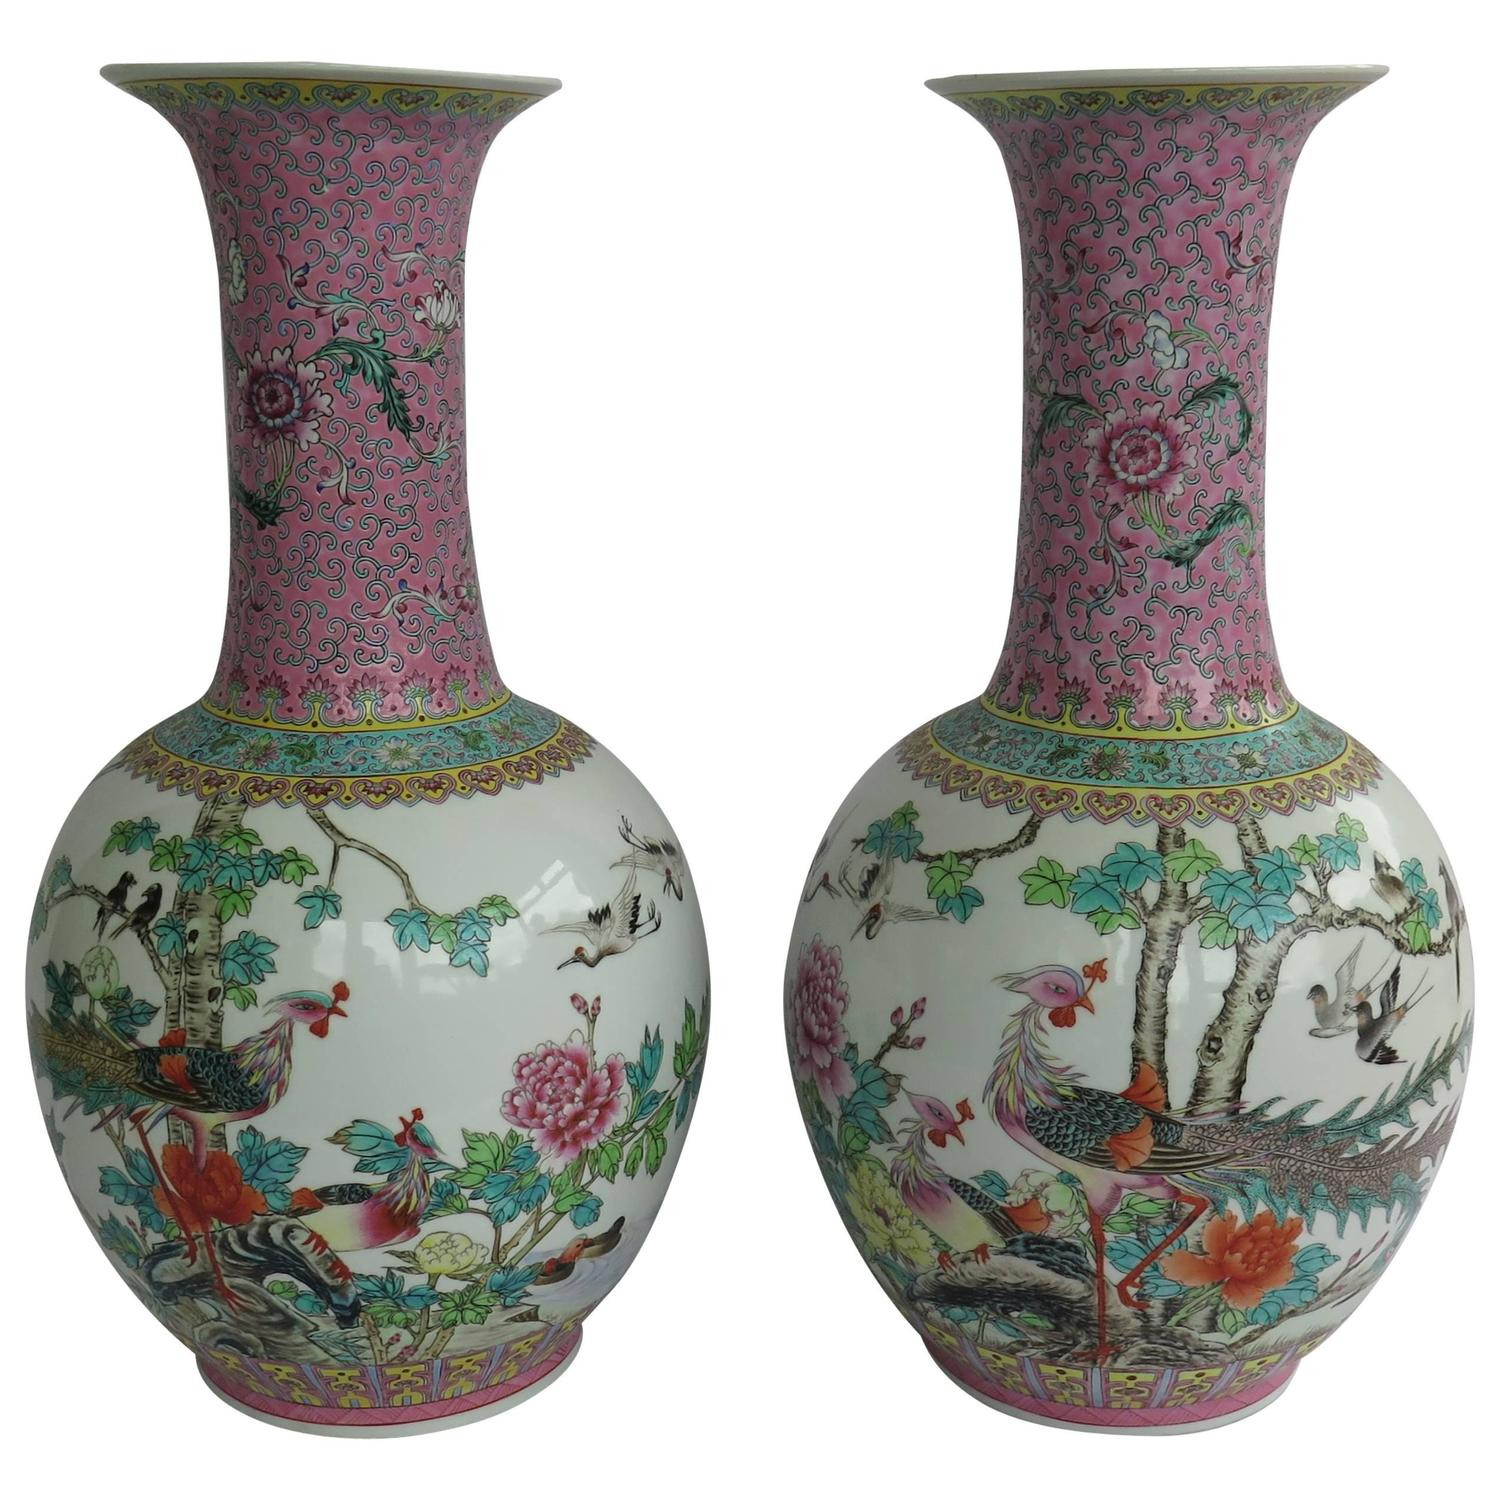 ancient chinese porcelain vase of pair of chinese antique canton famille rose porcelain vases for sale regarding pair of chinese antique canton famille rose porcelain vases for sale at 1stdibs